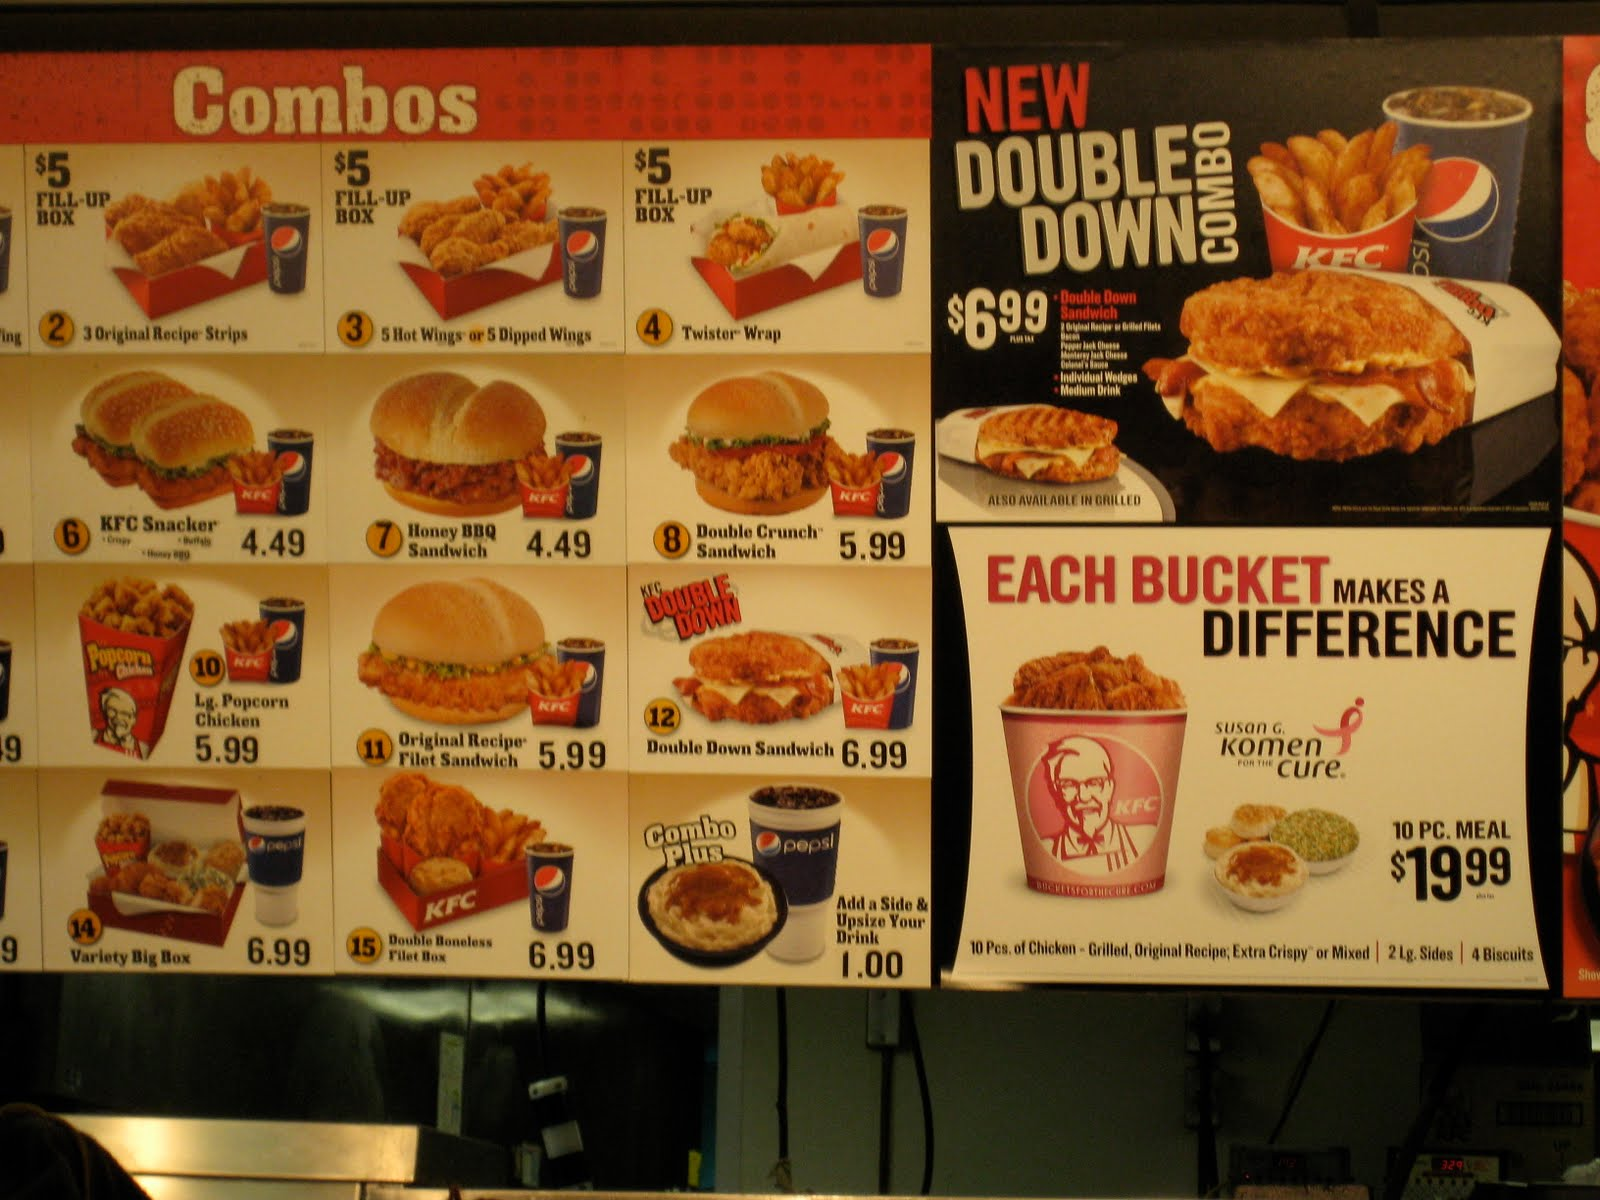 KFC Kentucky Fried Chicken Menu - photo#13